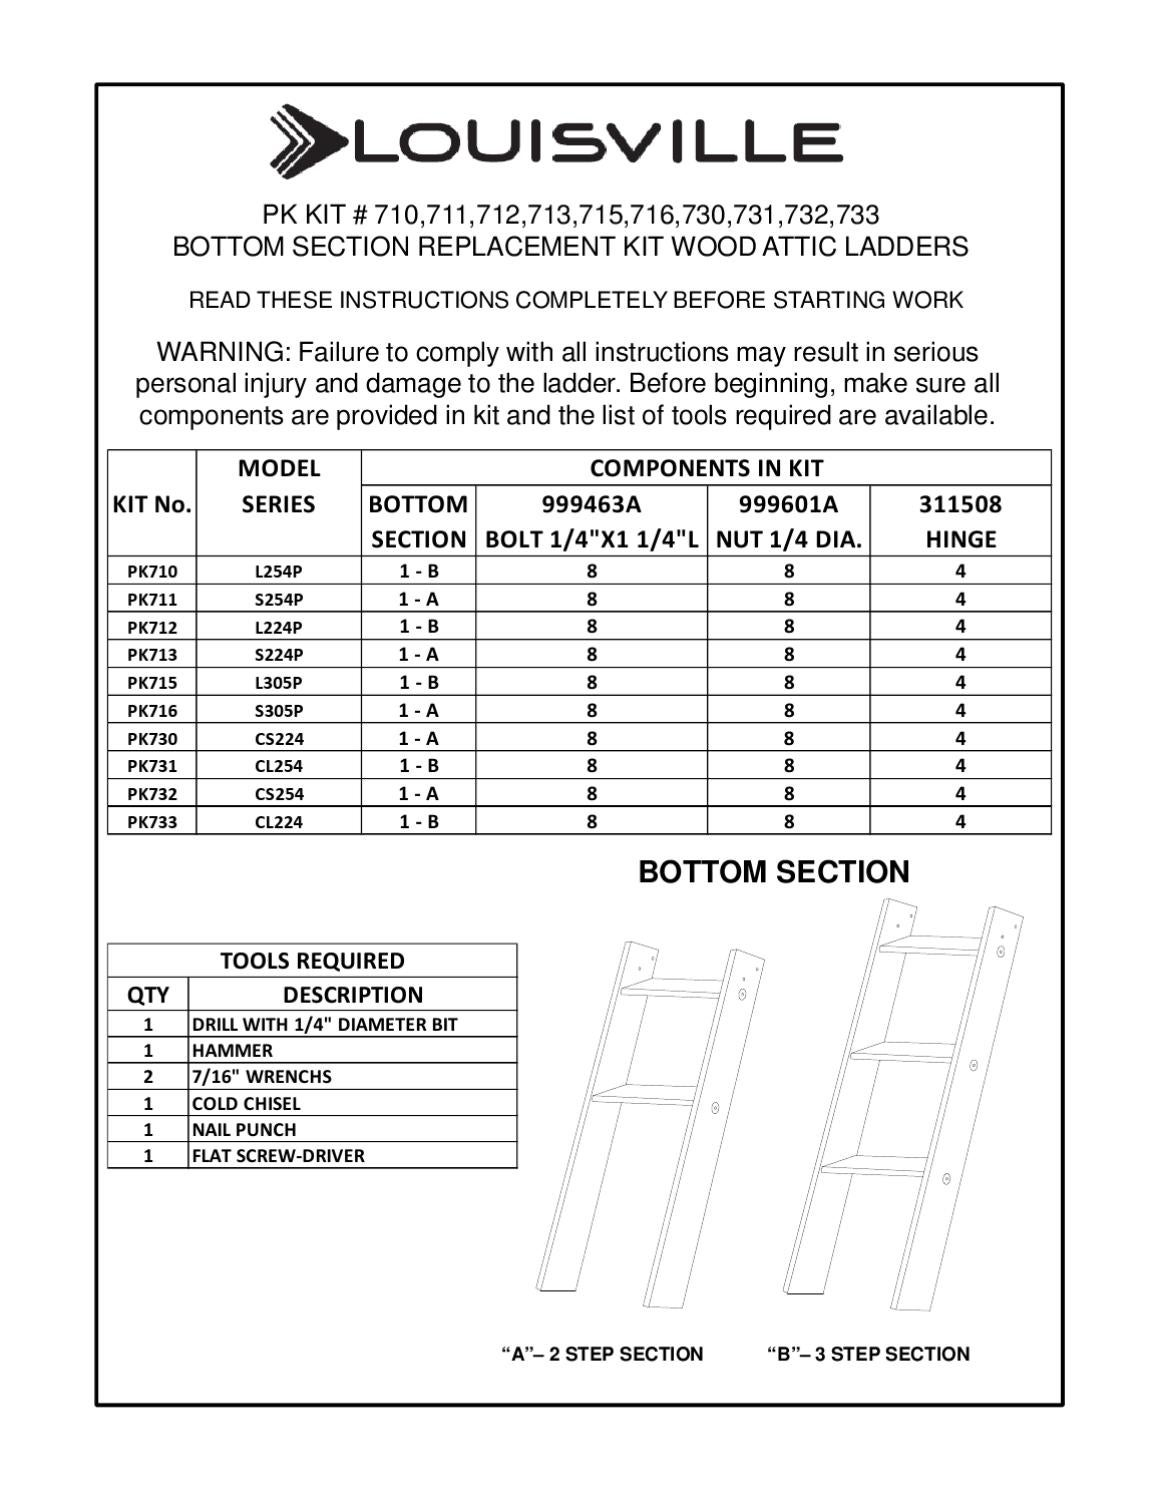 Bottom Section Replacement Kit By Louisville Ladder Inc Issuu